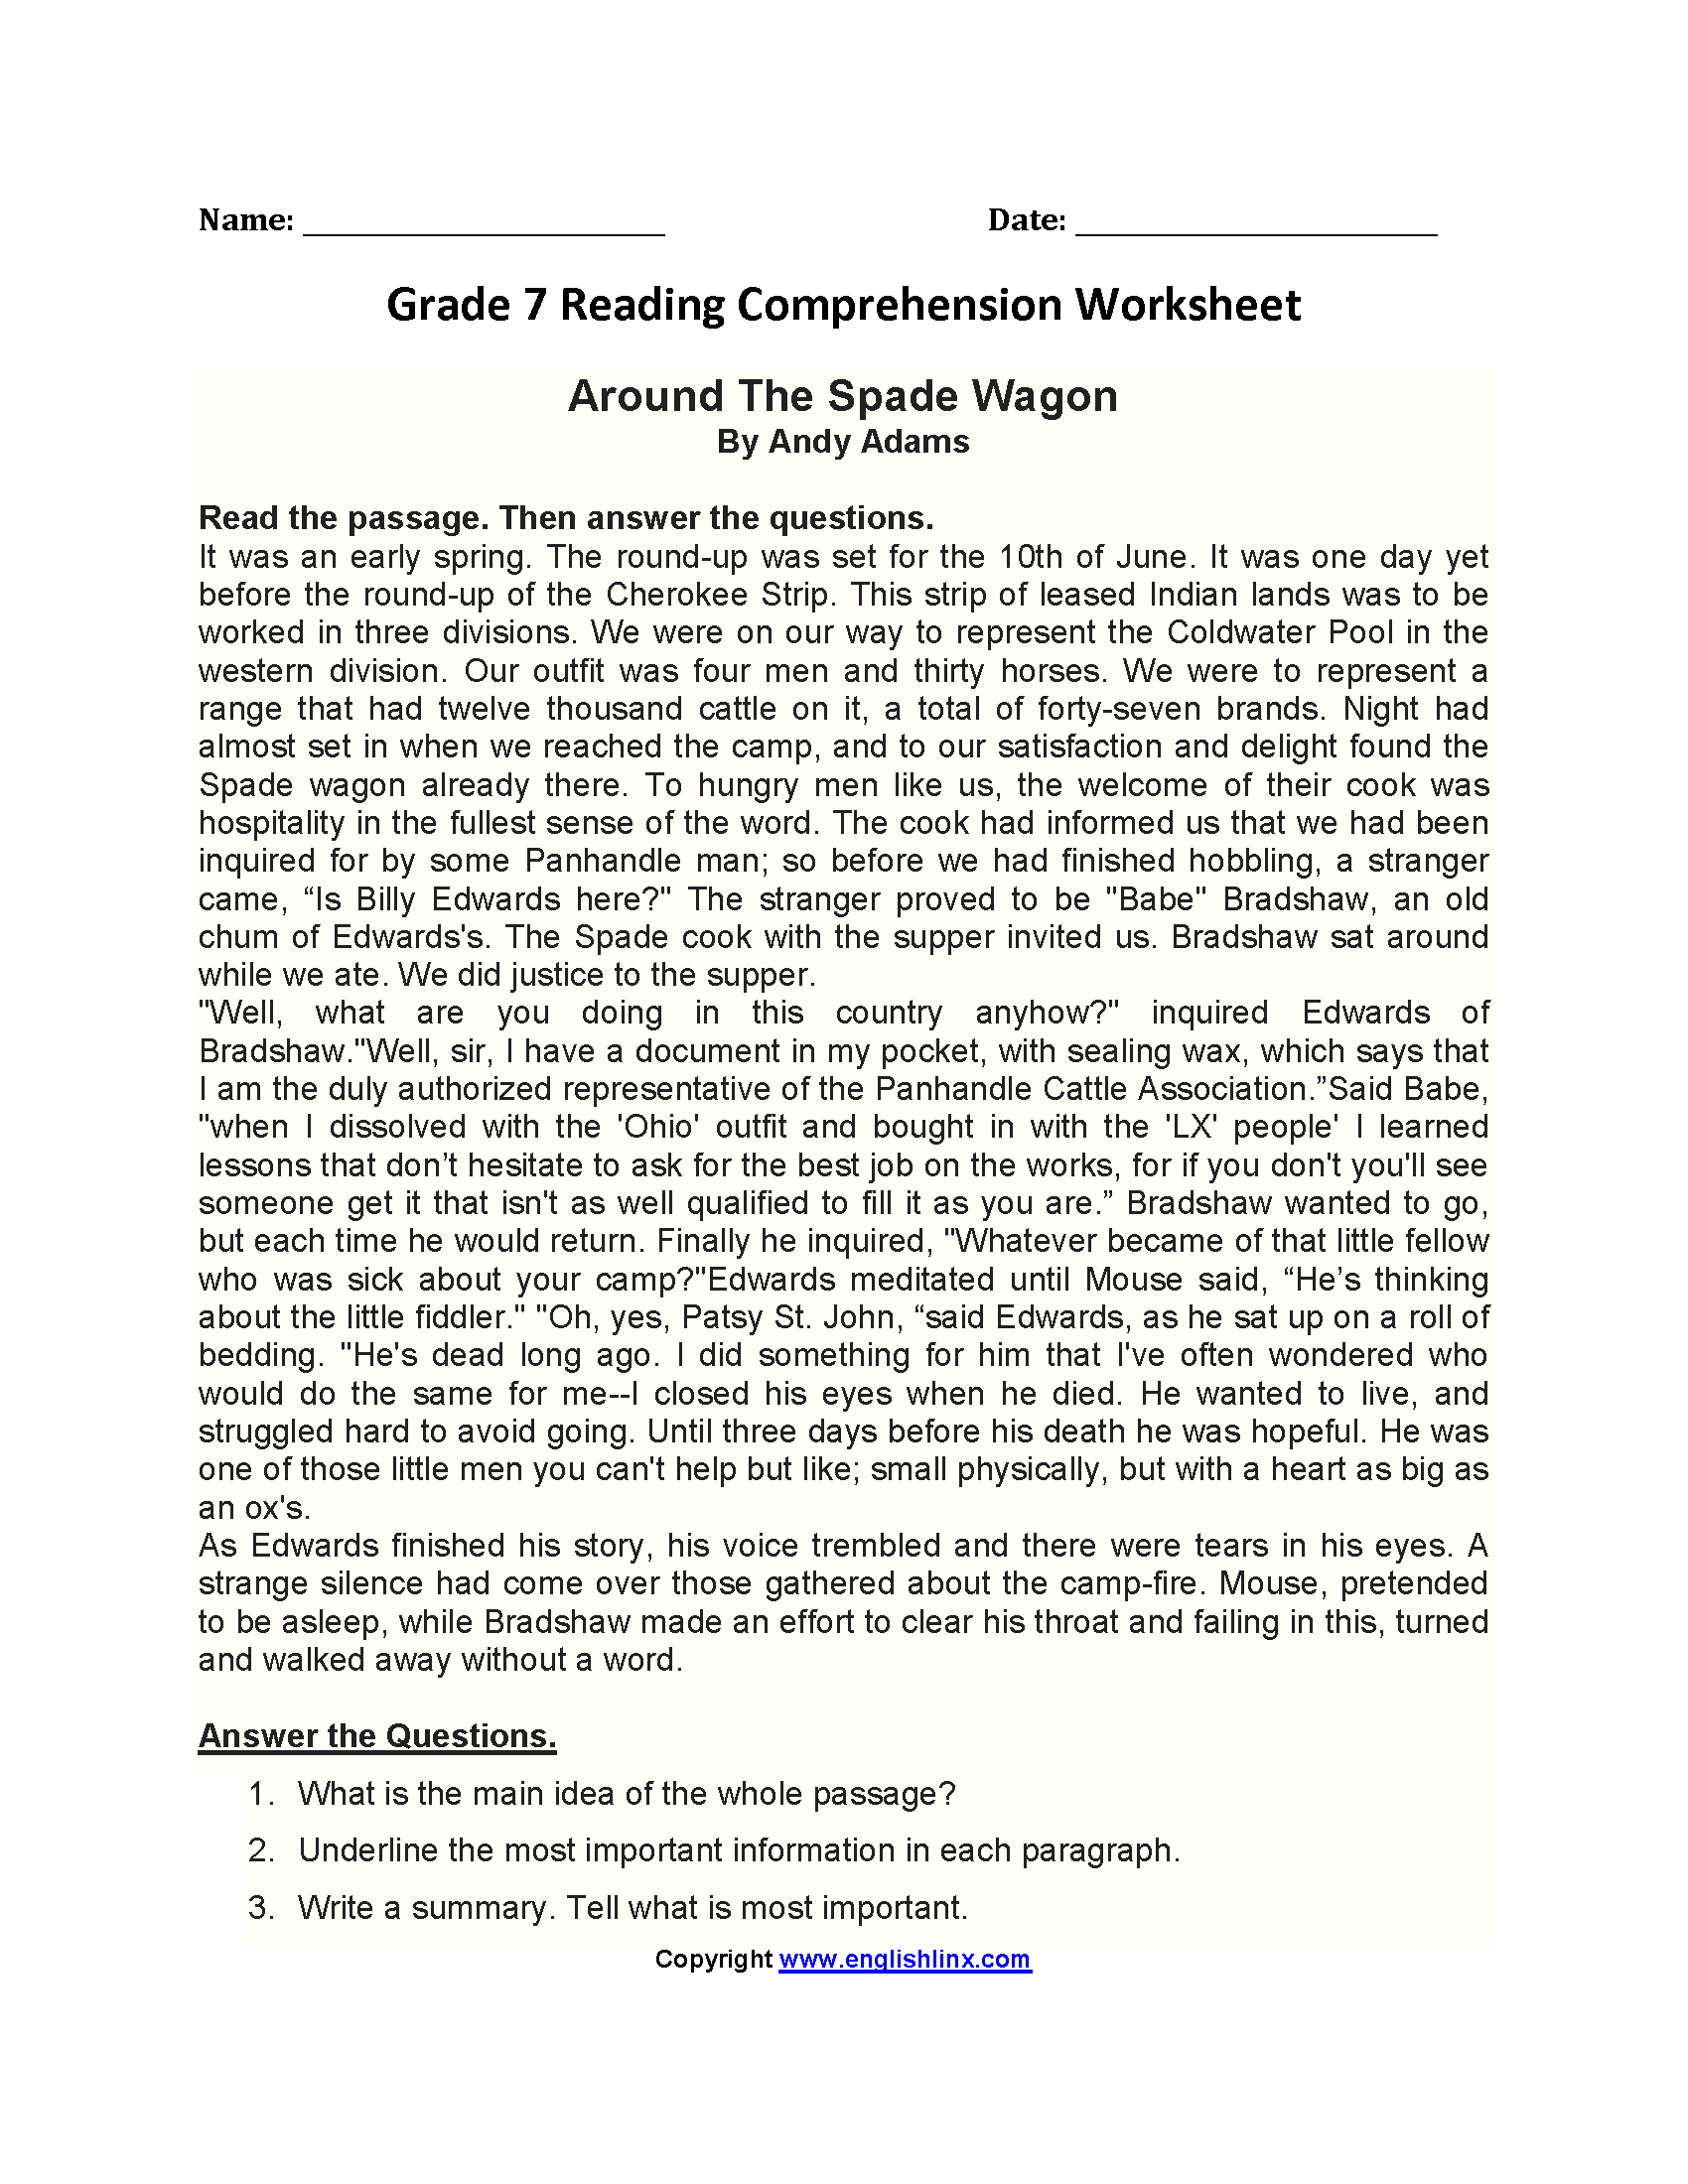 hight resolution of Around the Spade Wagon\u003cbr\u003eSeventh Grade Reading Worksheets   Reading  worksheets